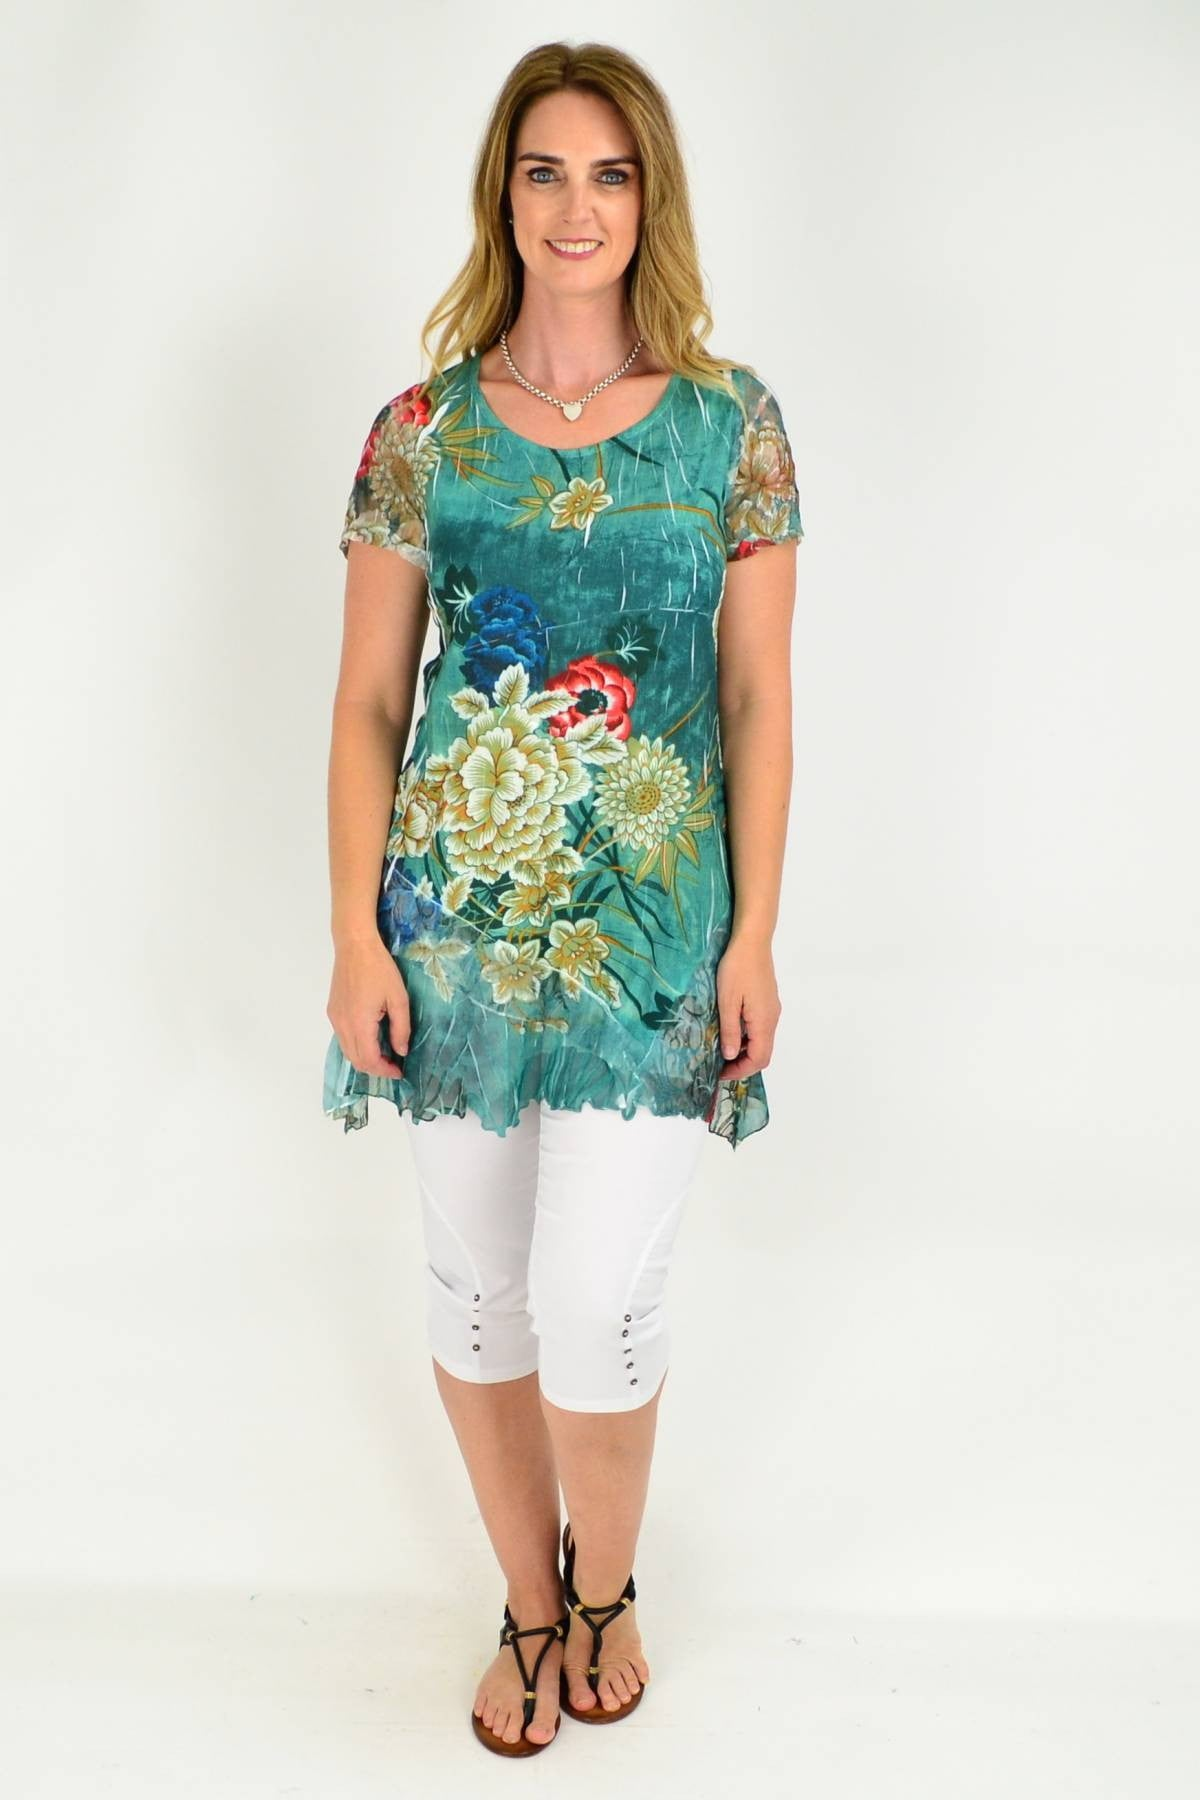 model wearing david jessie green floral tunic top